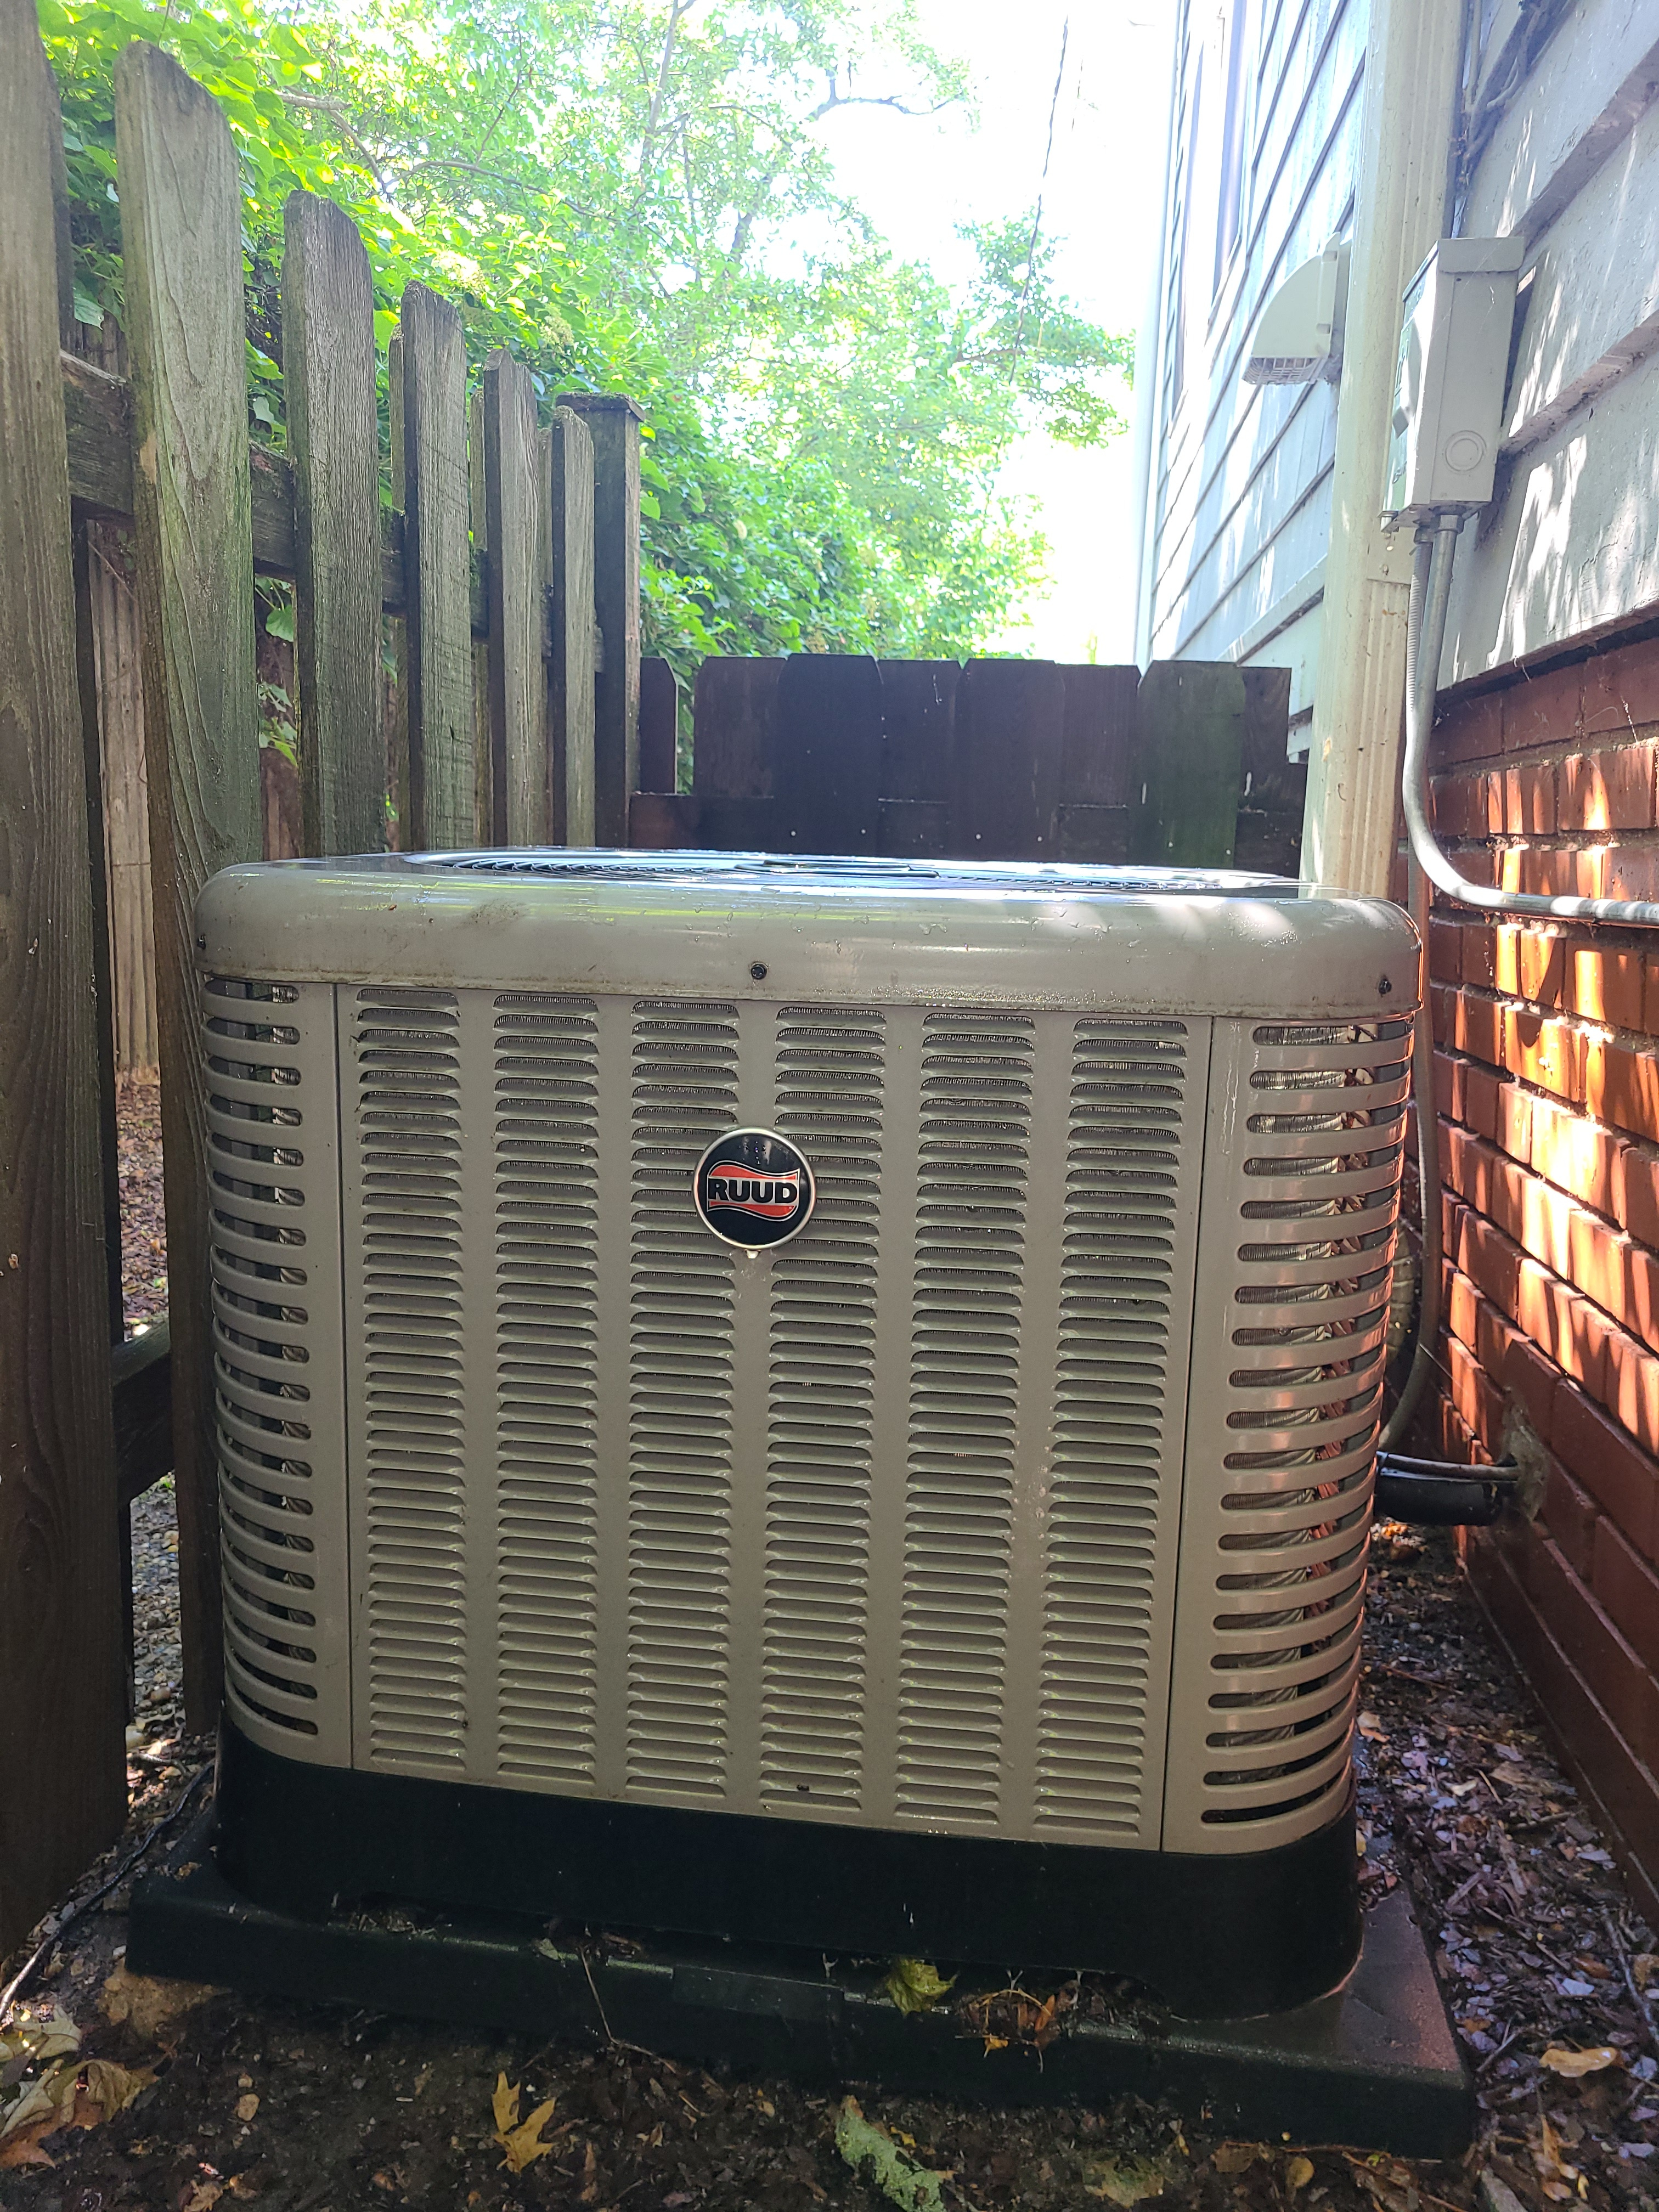 Make sure your Ruud keeps your family cool this summer and schedule a maintenance with American Weathermakers today.